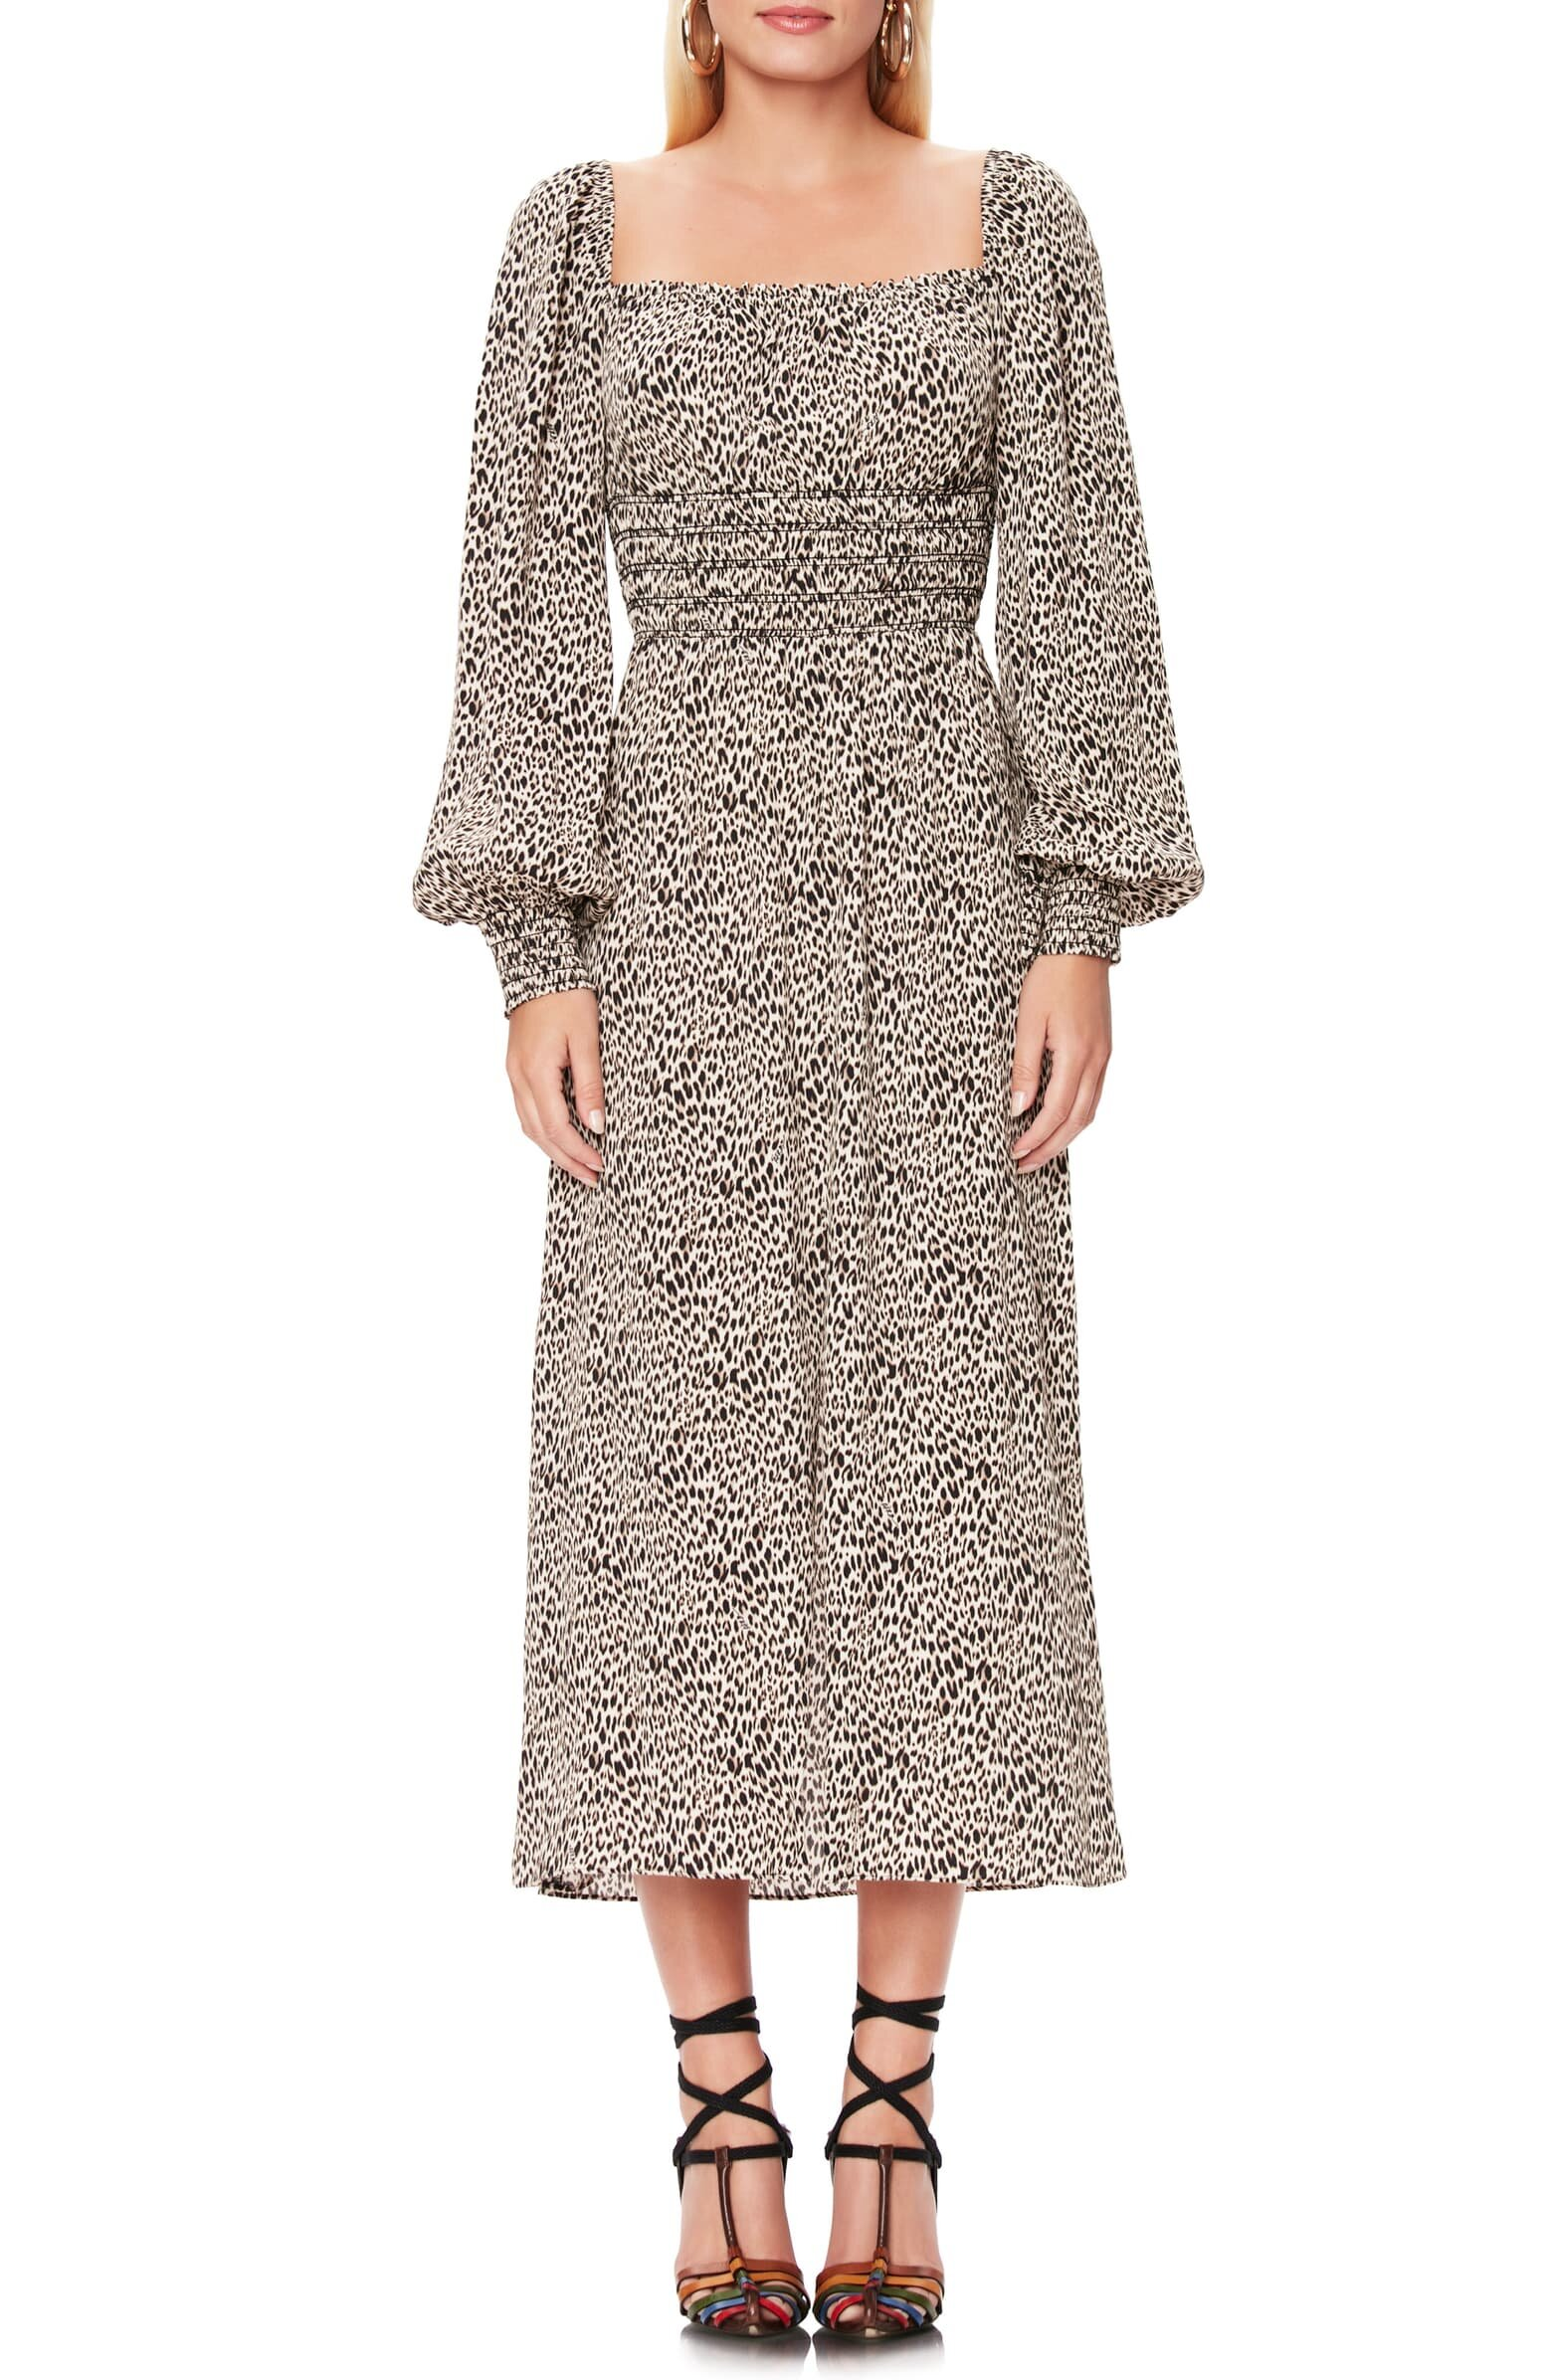 SHOP  AFRM Miro Leopard Print Long Sleeve Dress